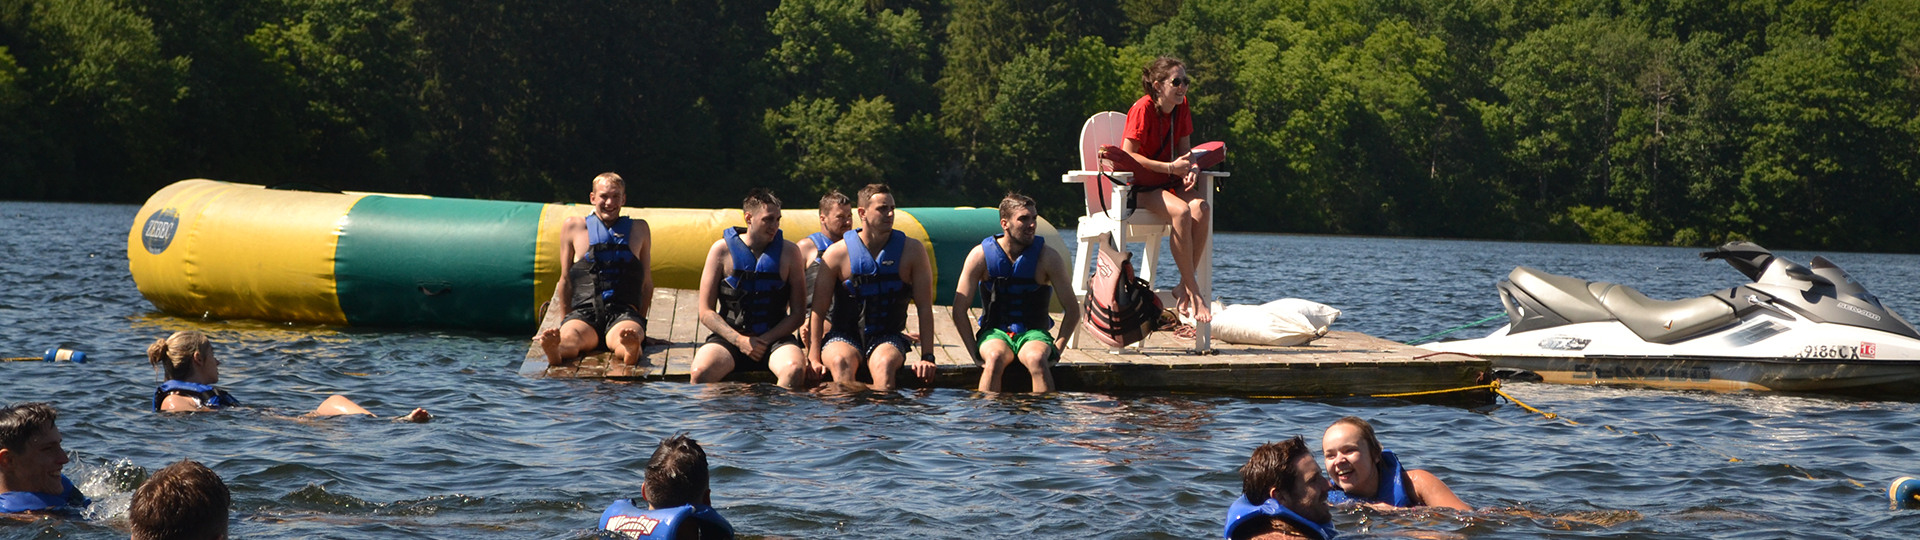 Spend your summer on a lake in the sunshine - teach swimming in America!